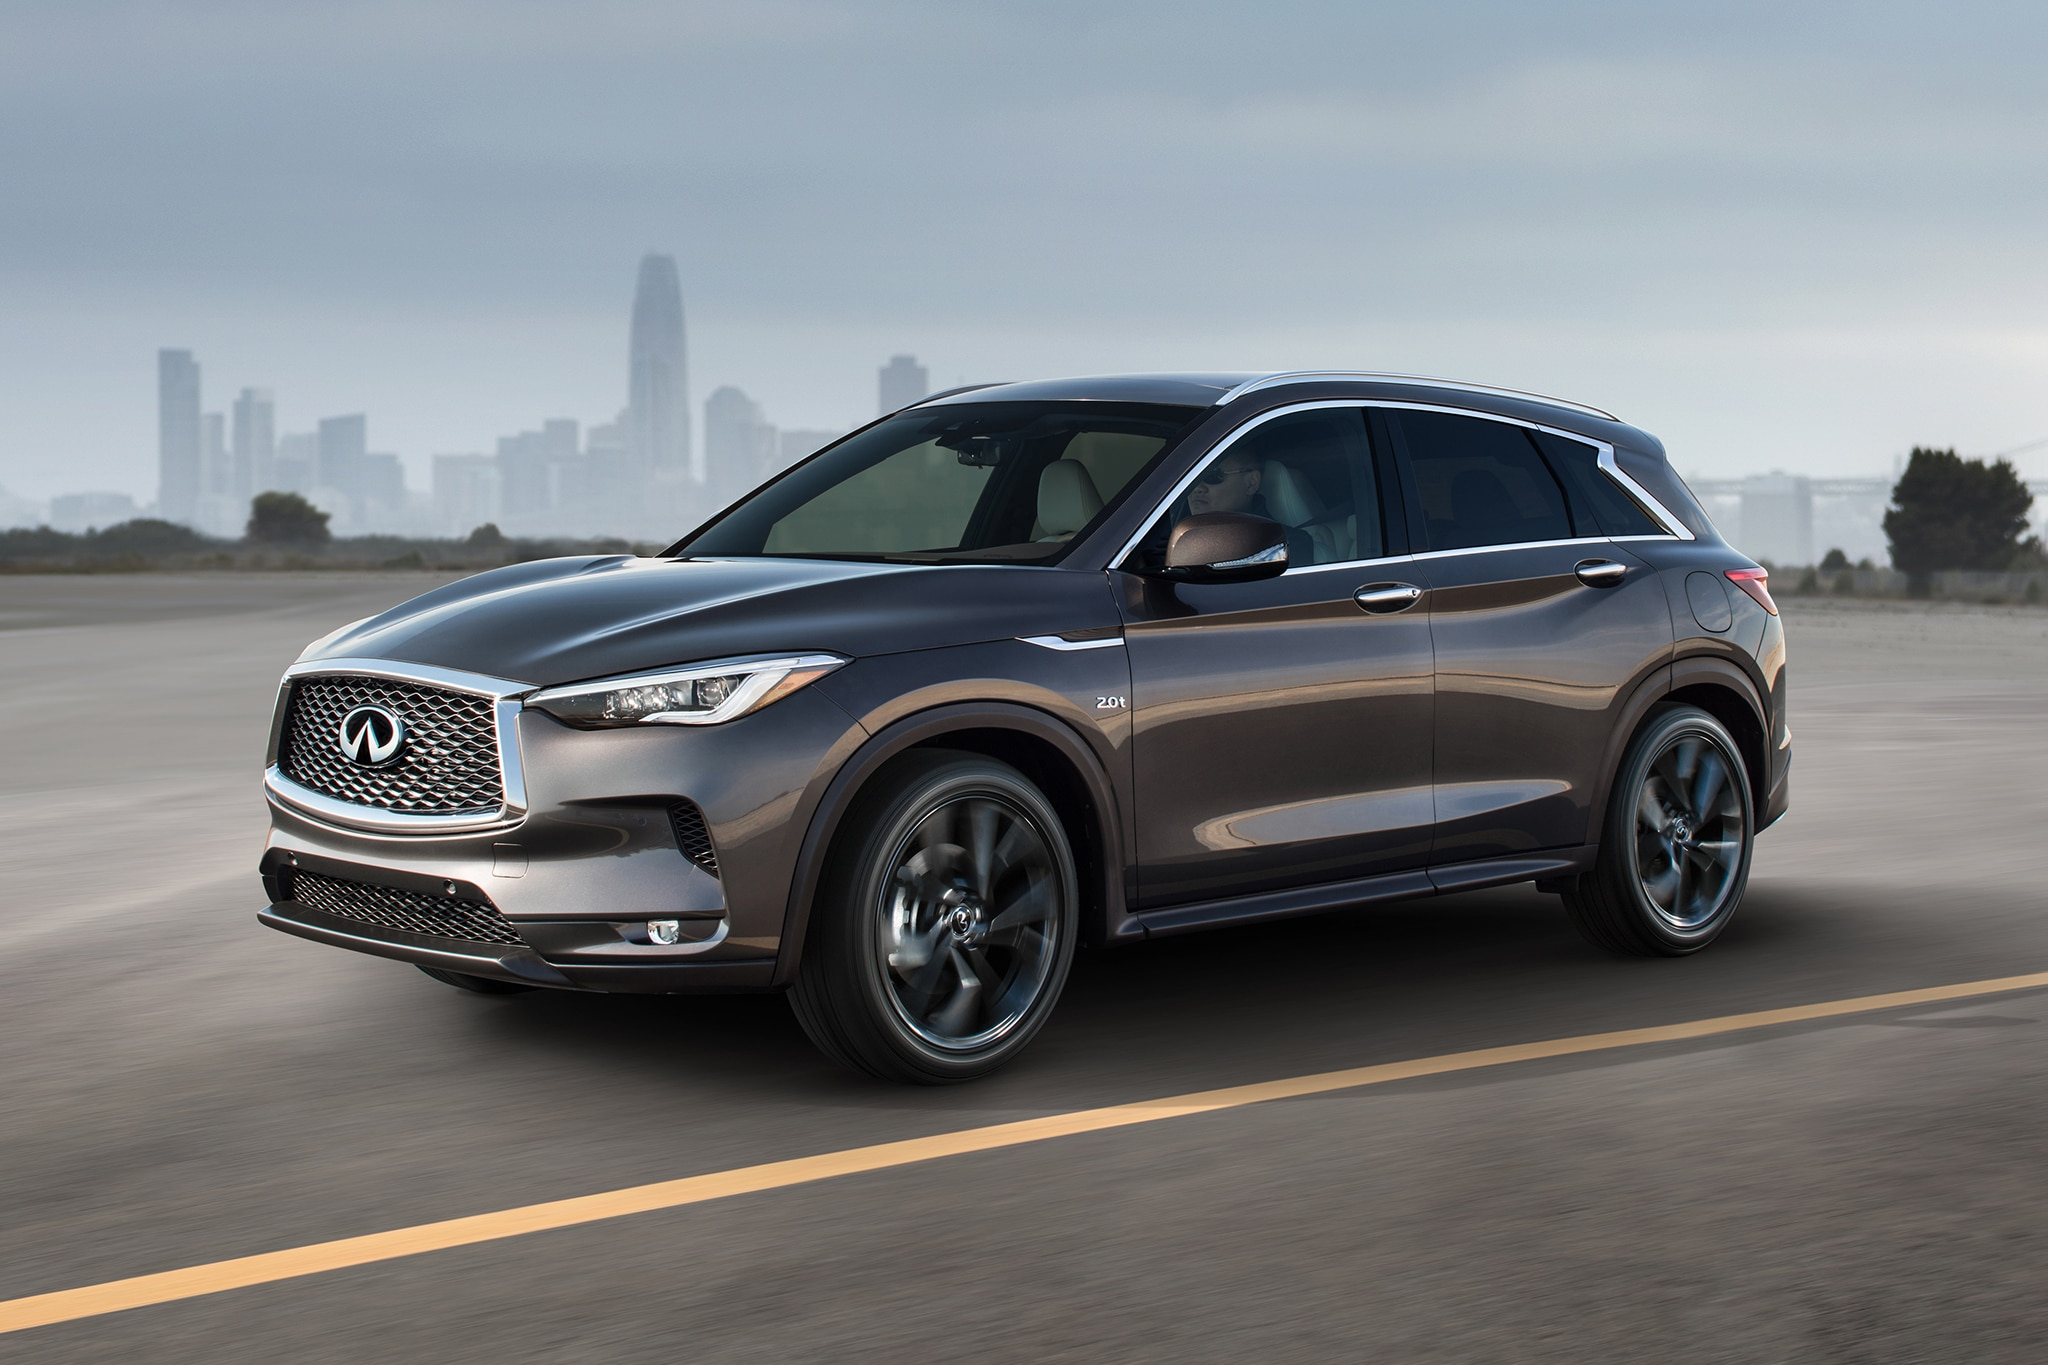 Infiniti Qx50 2019 >> 2019 Infiniti QX50 Pricing Announced | Automobile Magazine